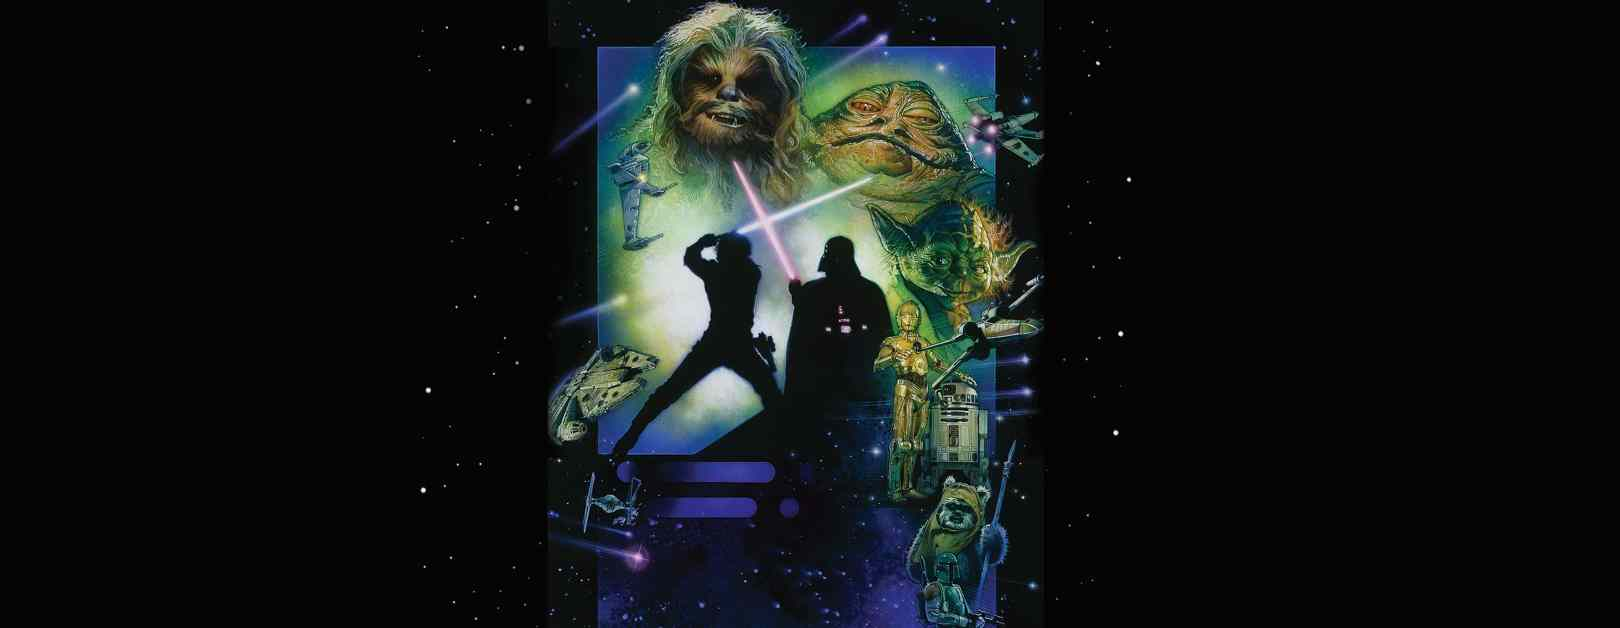 Star Wars: Return of the Jedi – In Concert